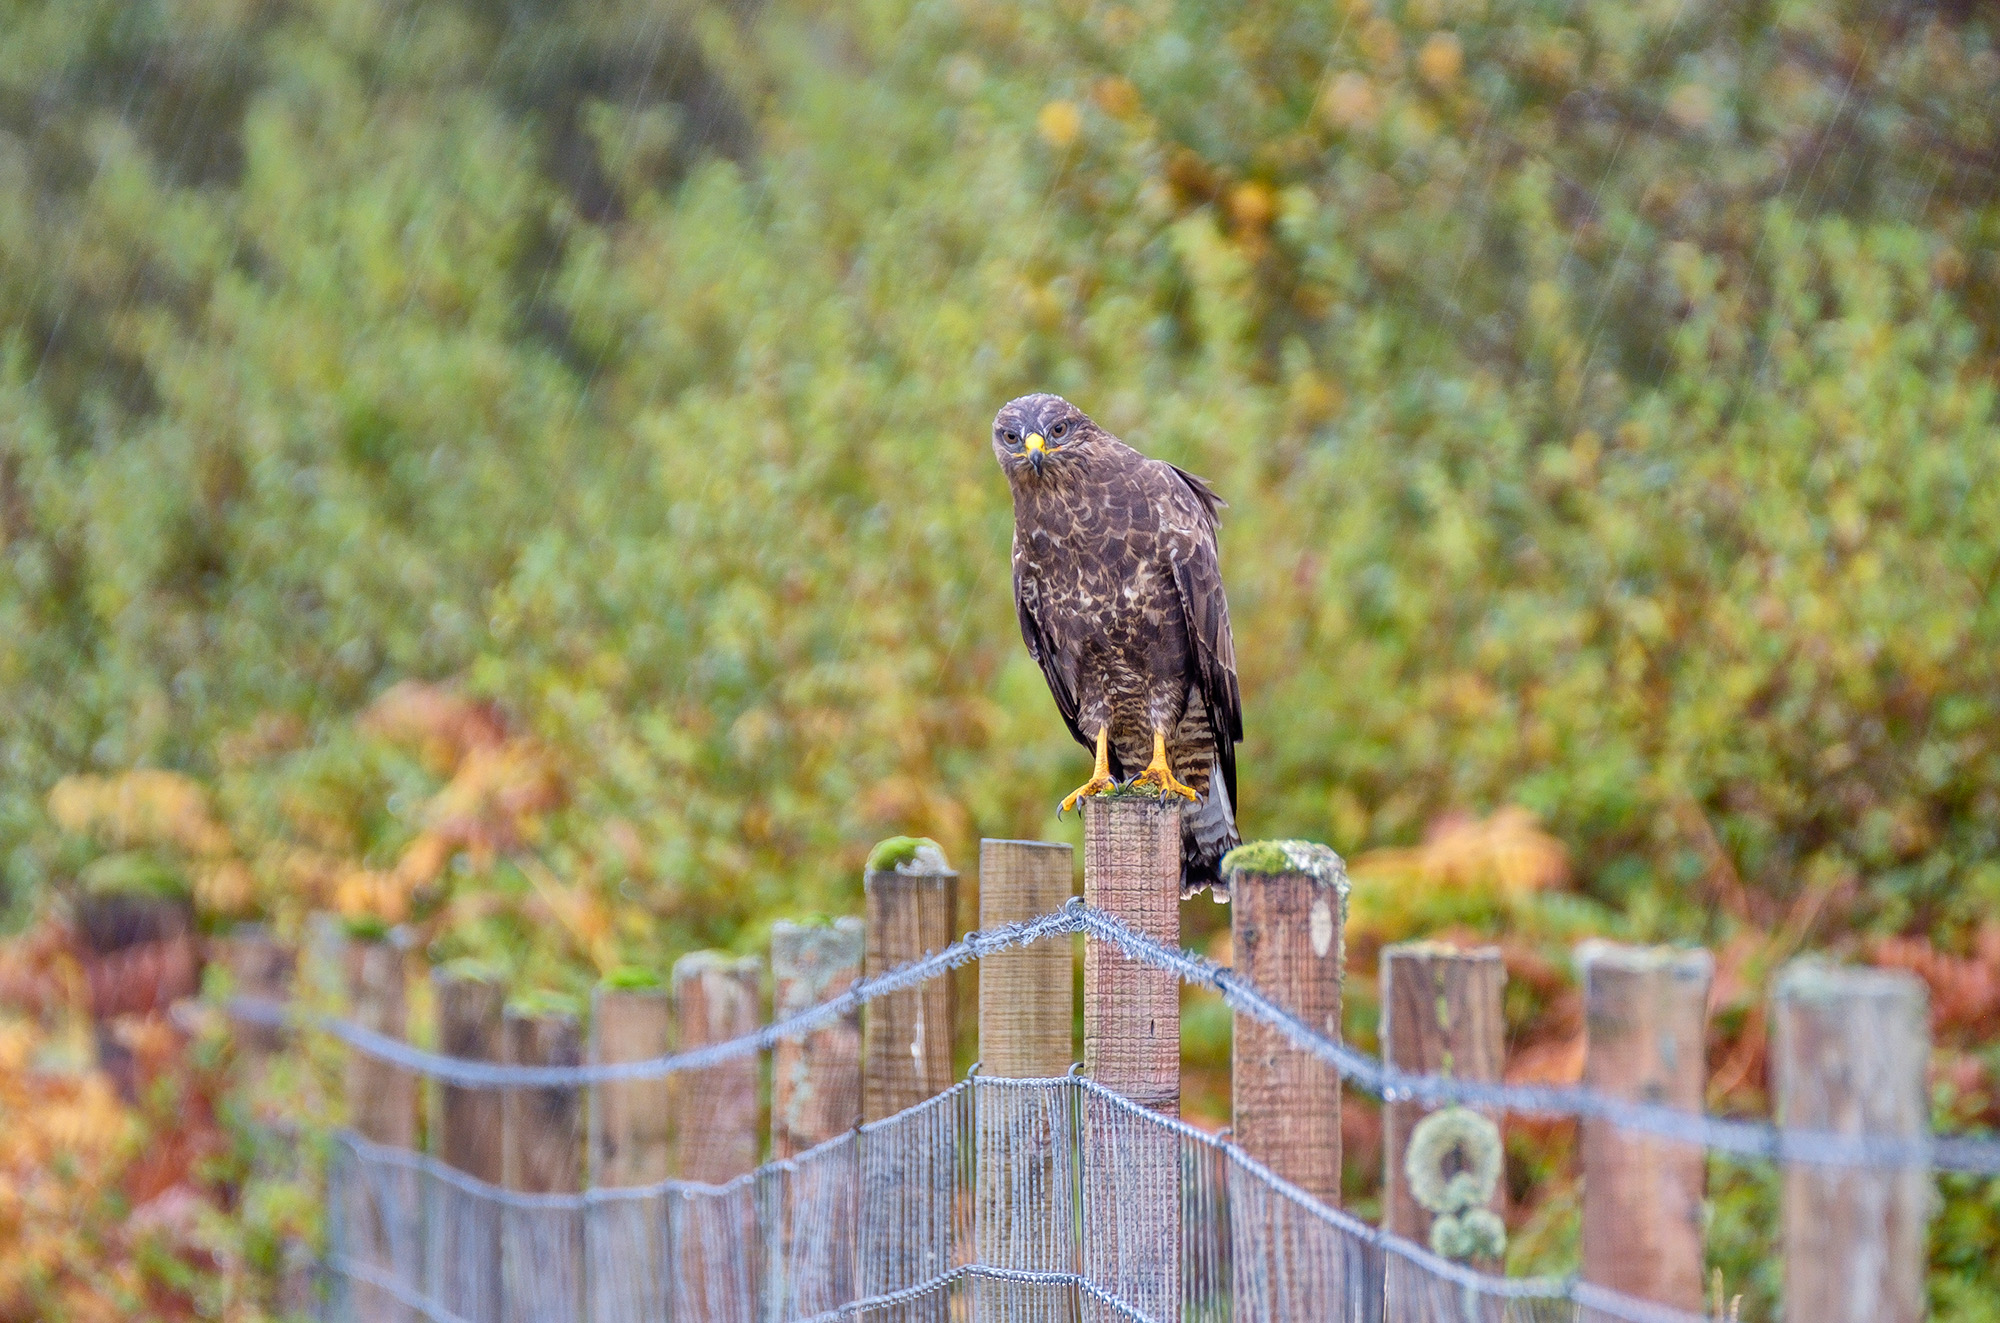 Common Buzzard, Loch Scridain, Isle of Mull, Scotland - Bob Hamilton